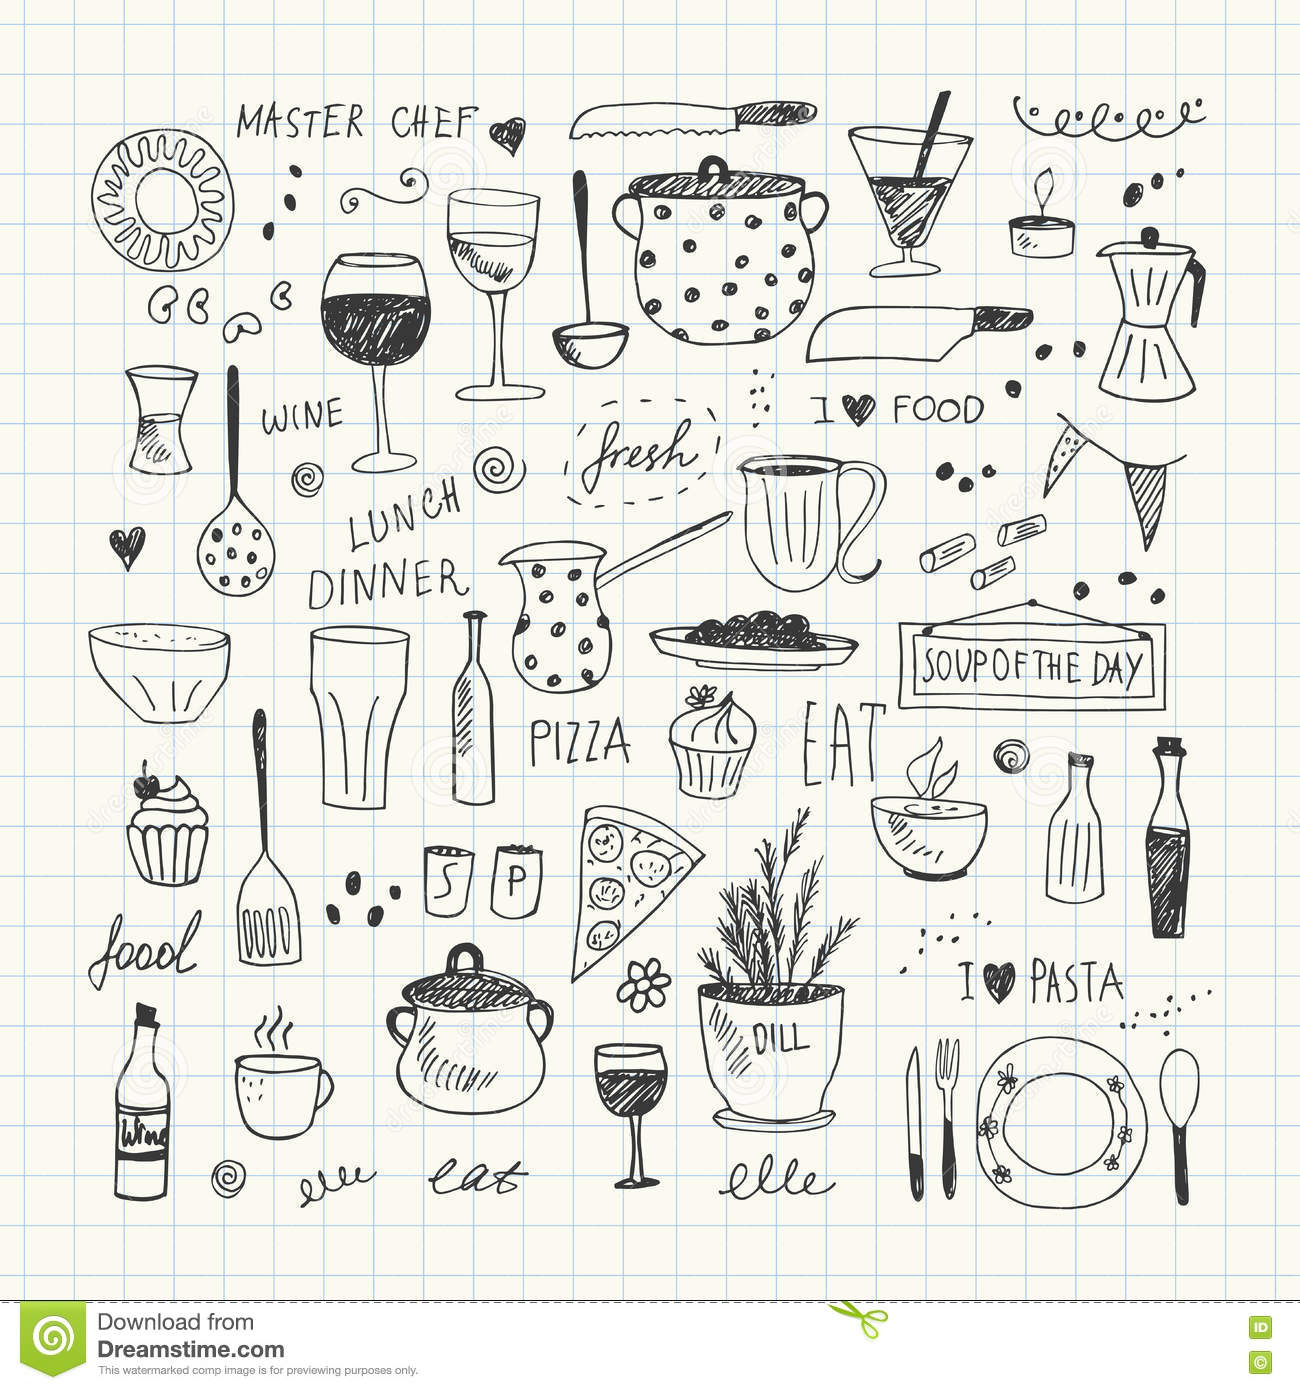 Kitchen tools drawing - Doodle Drawing Drawn Hand Kitchen